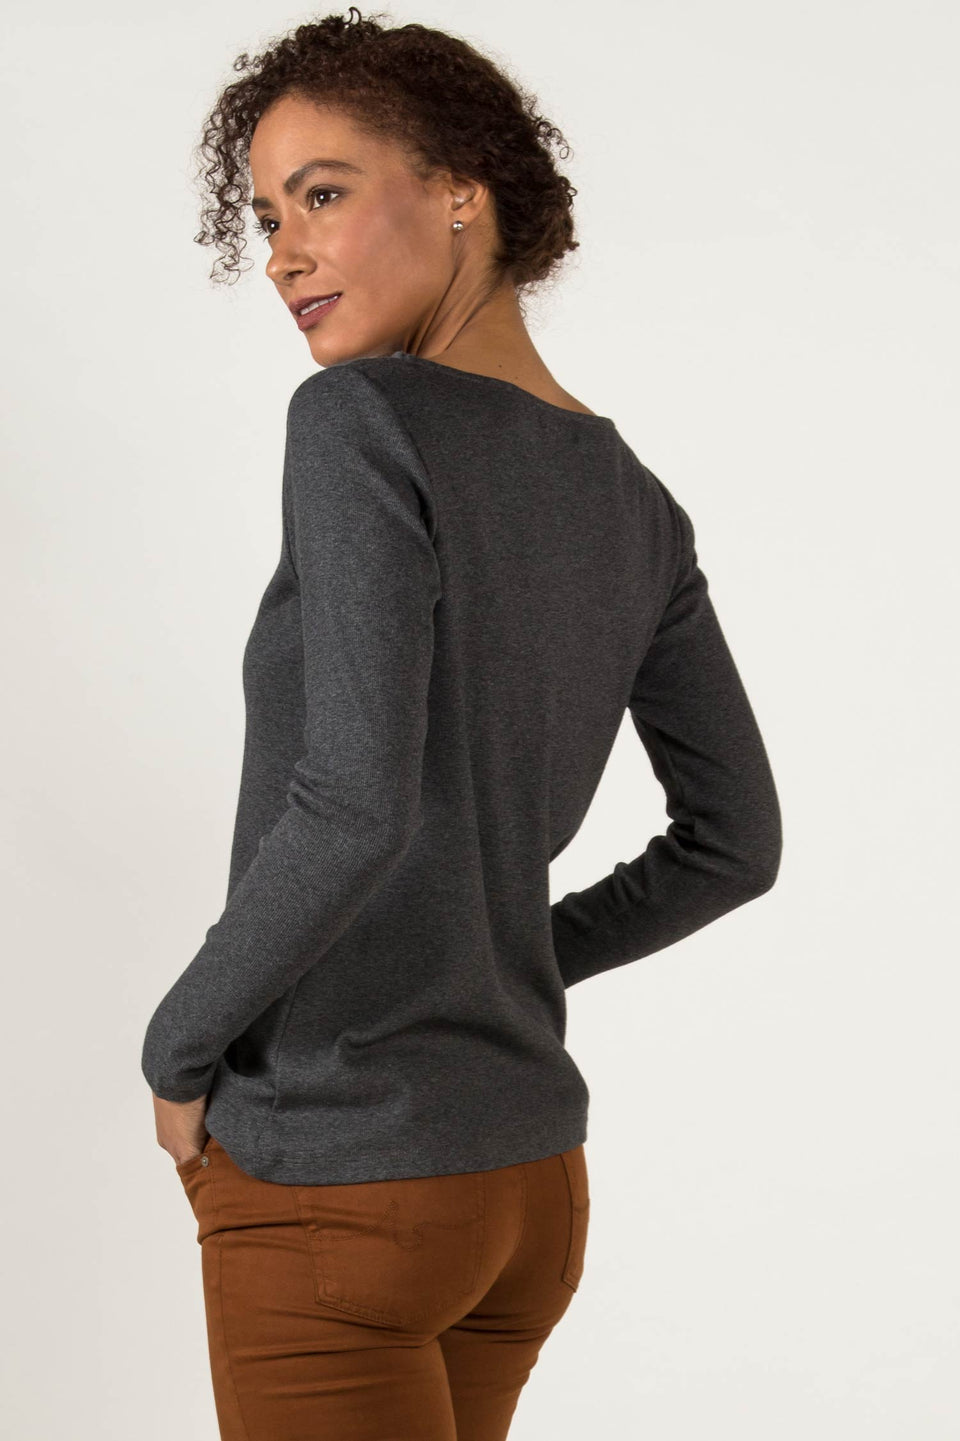 Essential Rib Boatneck in Charcoal